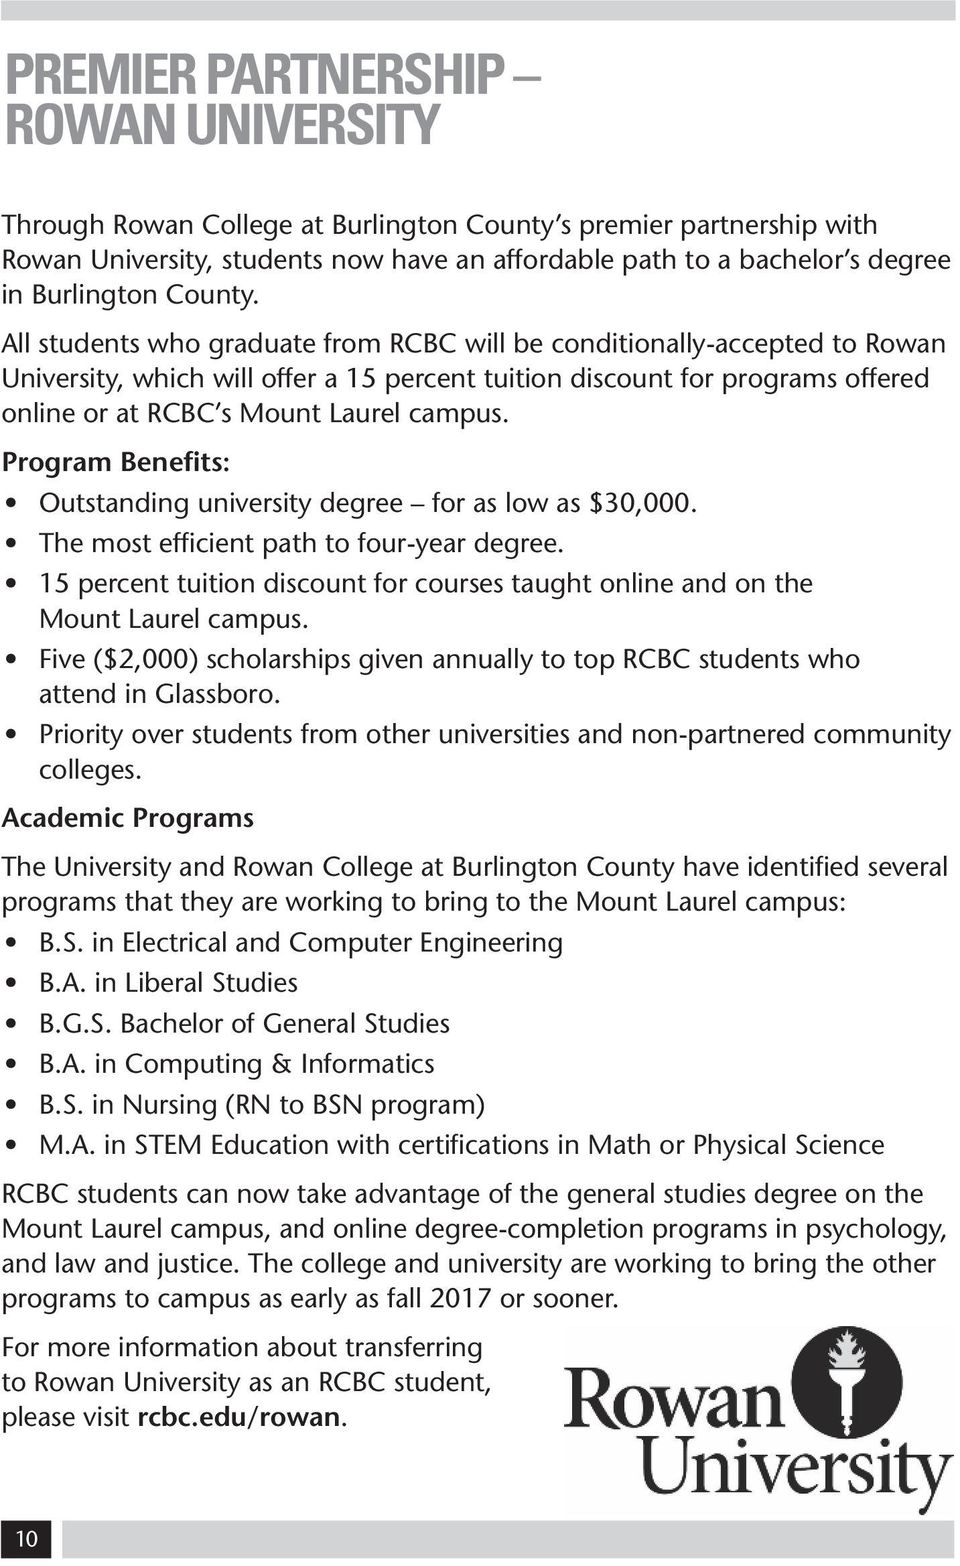 All students who graduate from RCBC will be conditionally-accepted to Rowan University, which will offer a 15 percent tuition discount for programs offered online or at RCBC s Mount Laurel campus.